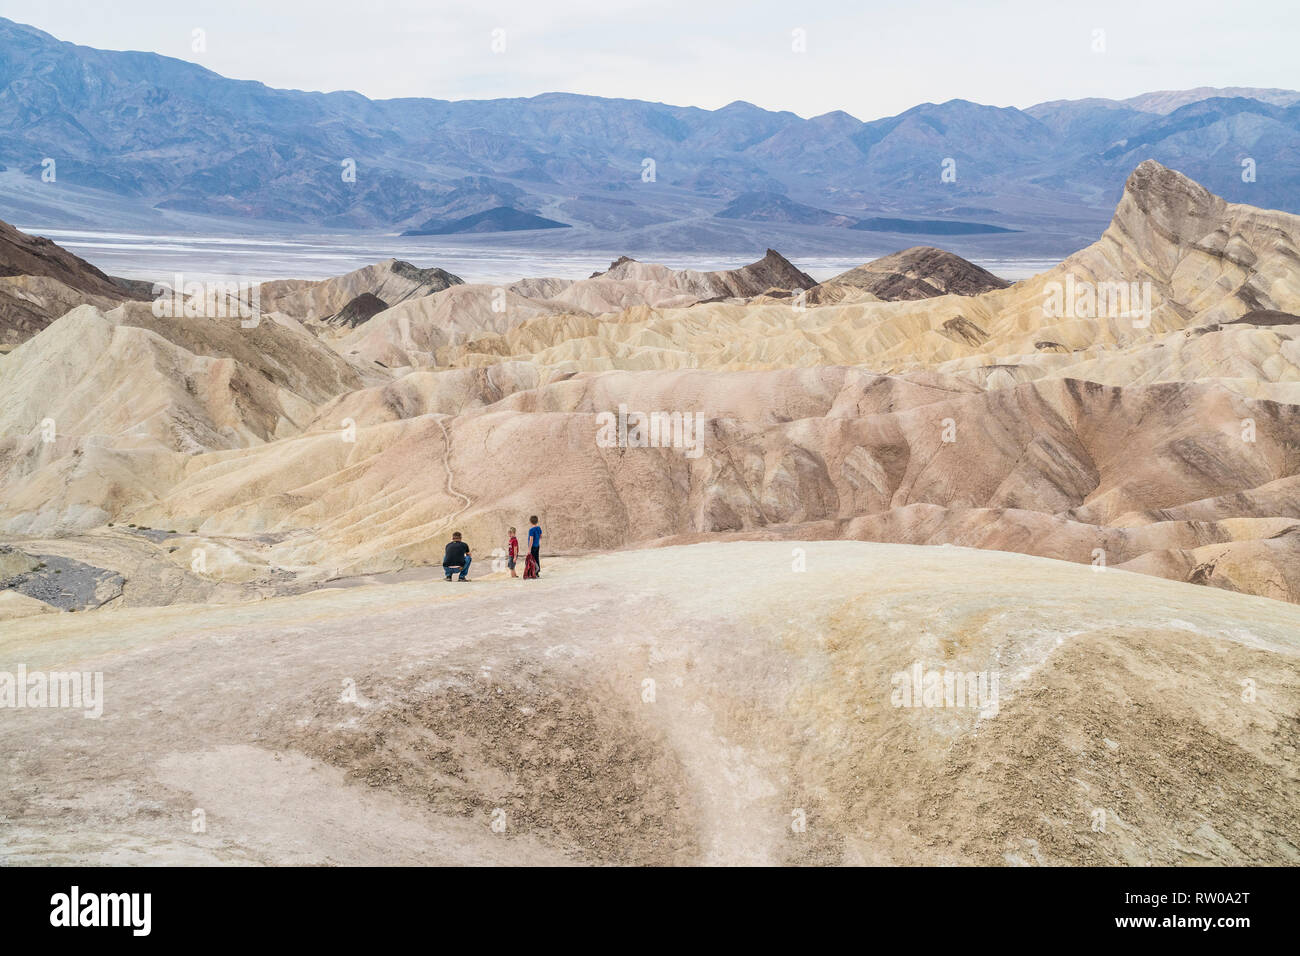 A view of Zabrinski Point in Death Valley, California with a father and his two children in the foreground. - Stock Image